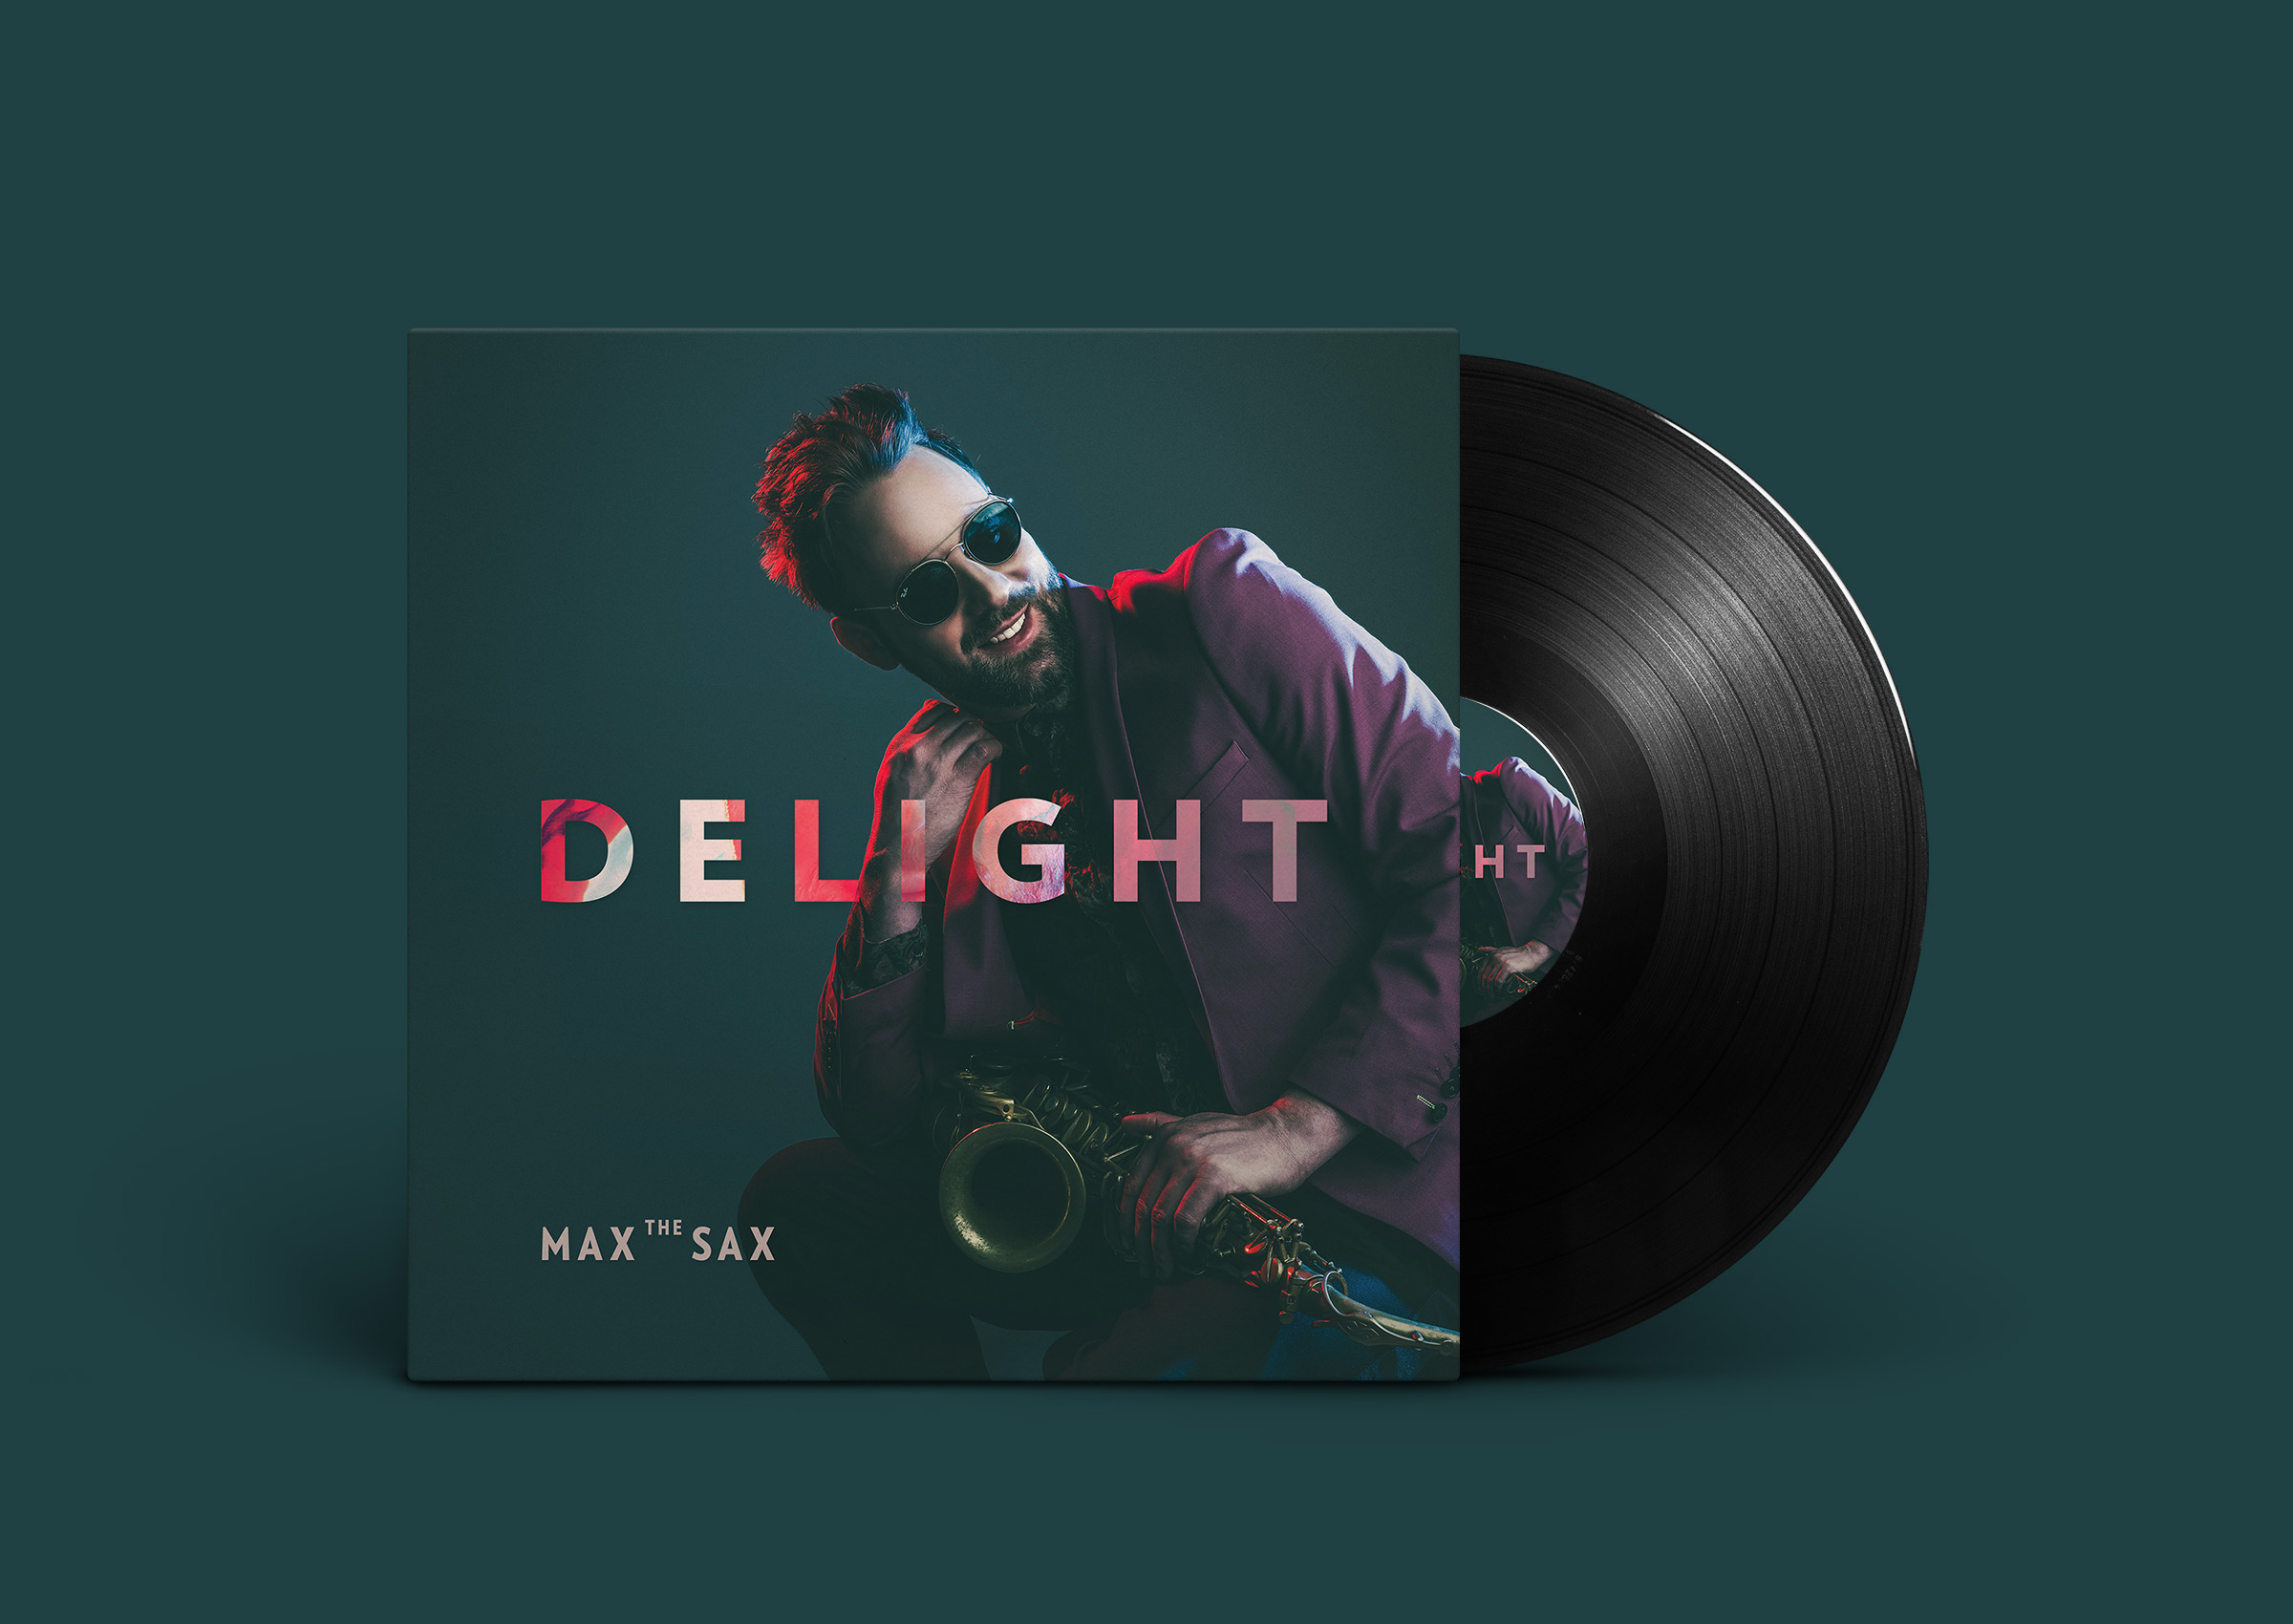 Delight Max the Sax - MW DESIGN